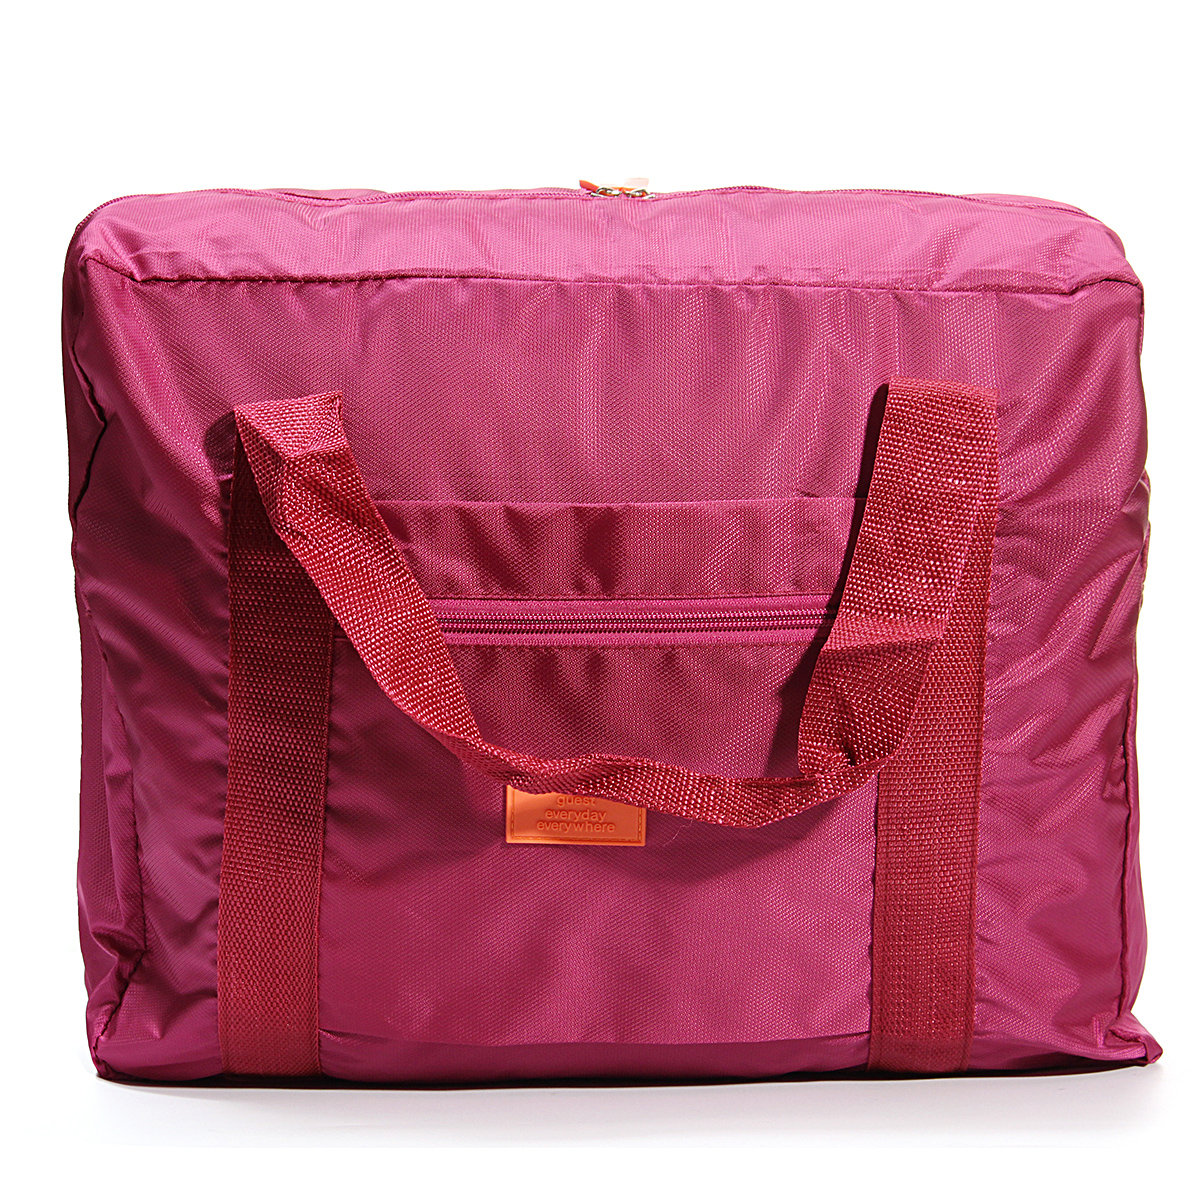 Large Nylon Travel Luggage Storage Bag Waterproof Clothes Organizer Storage Containers